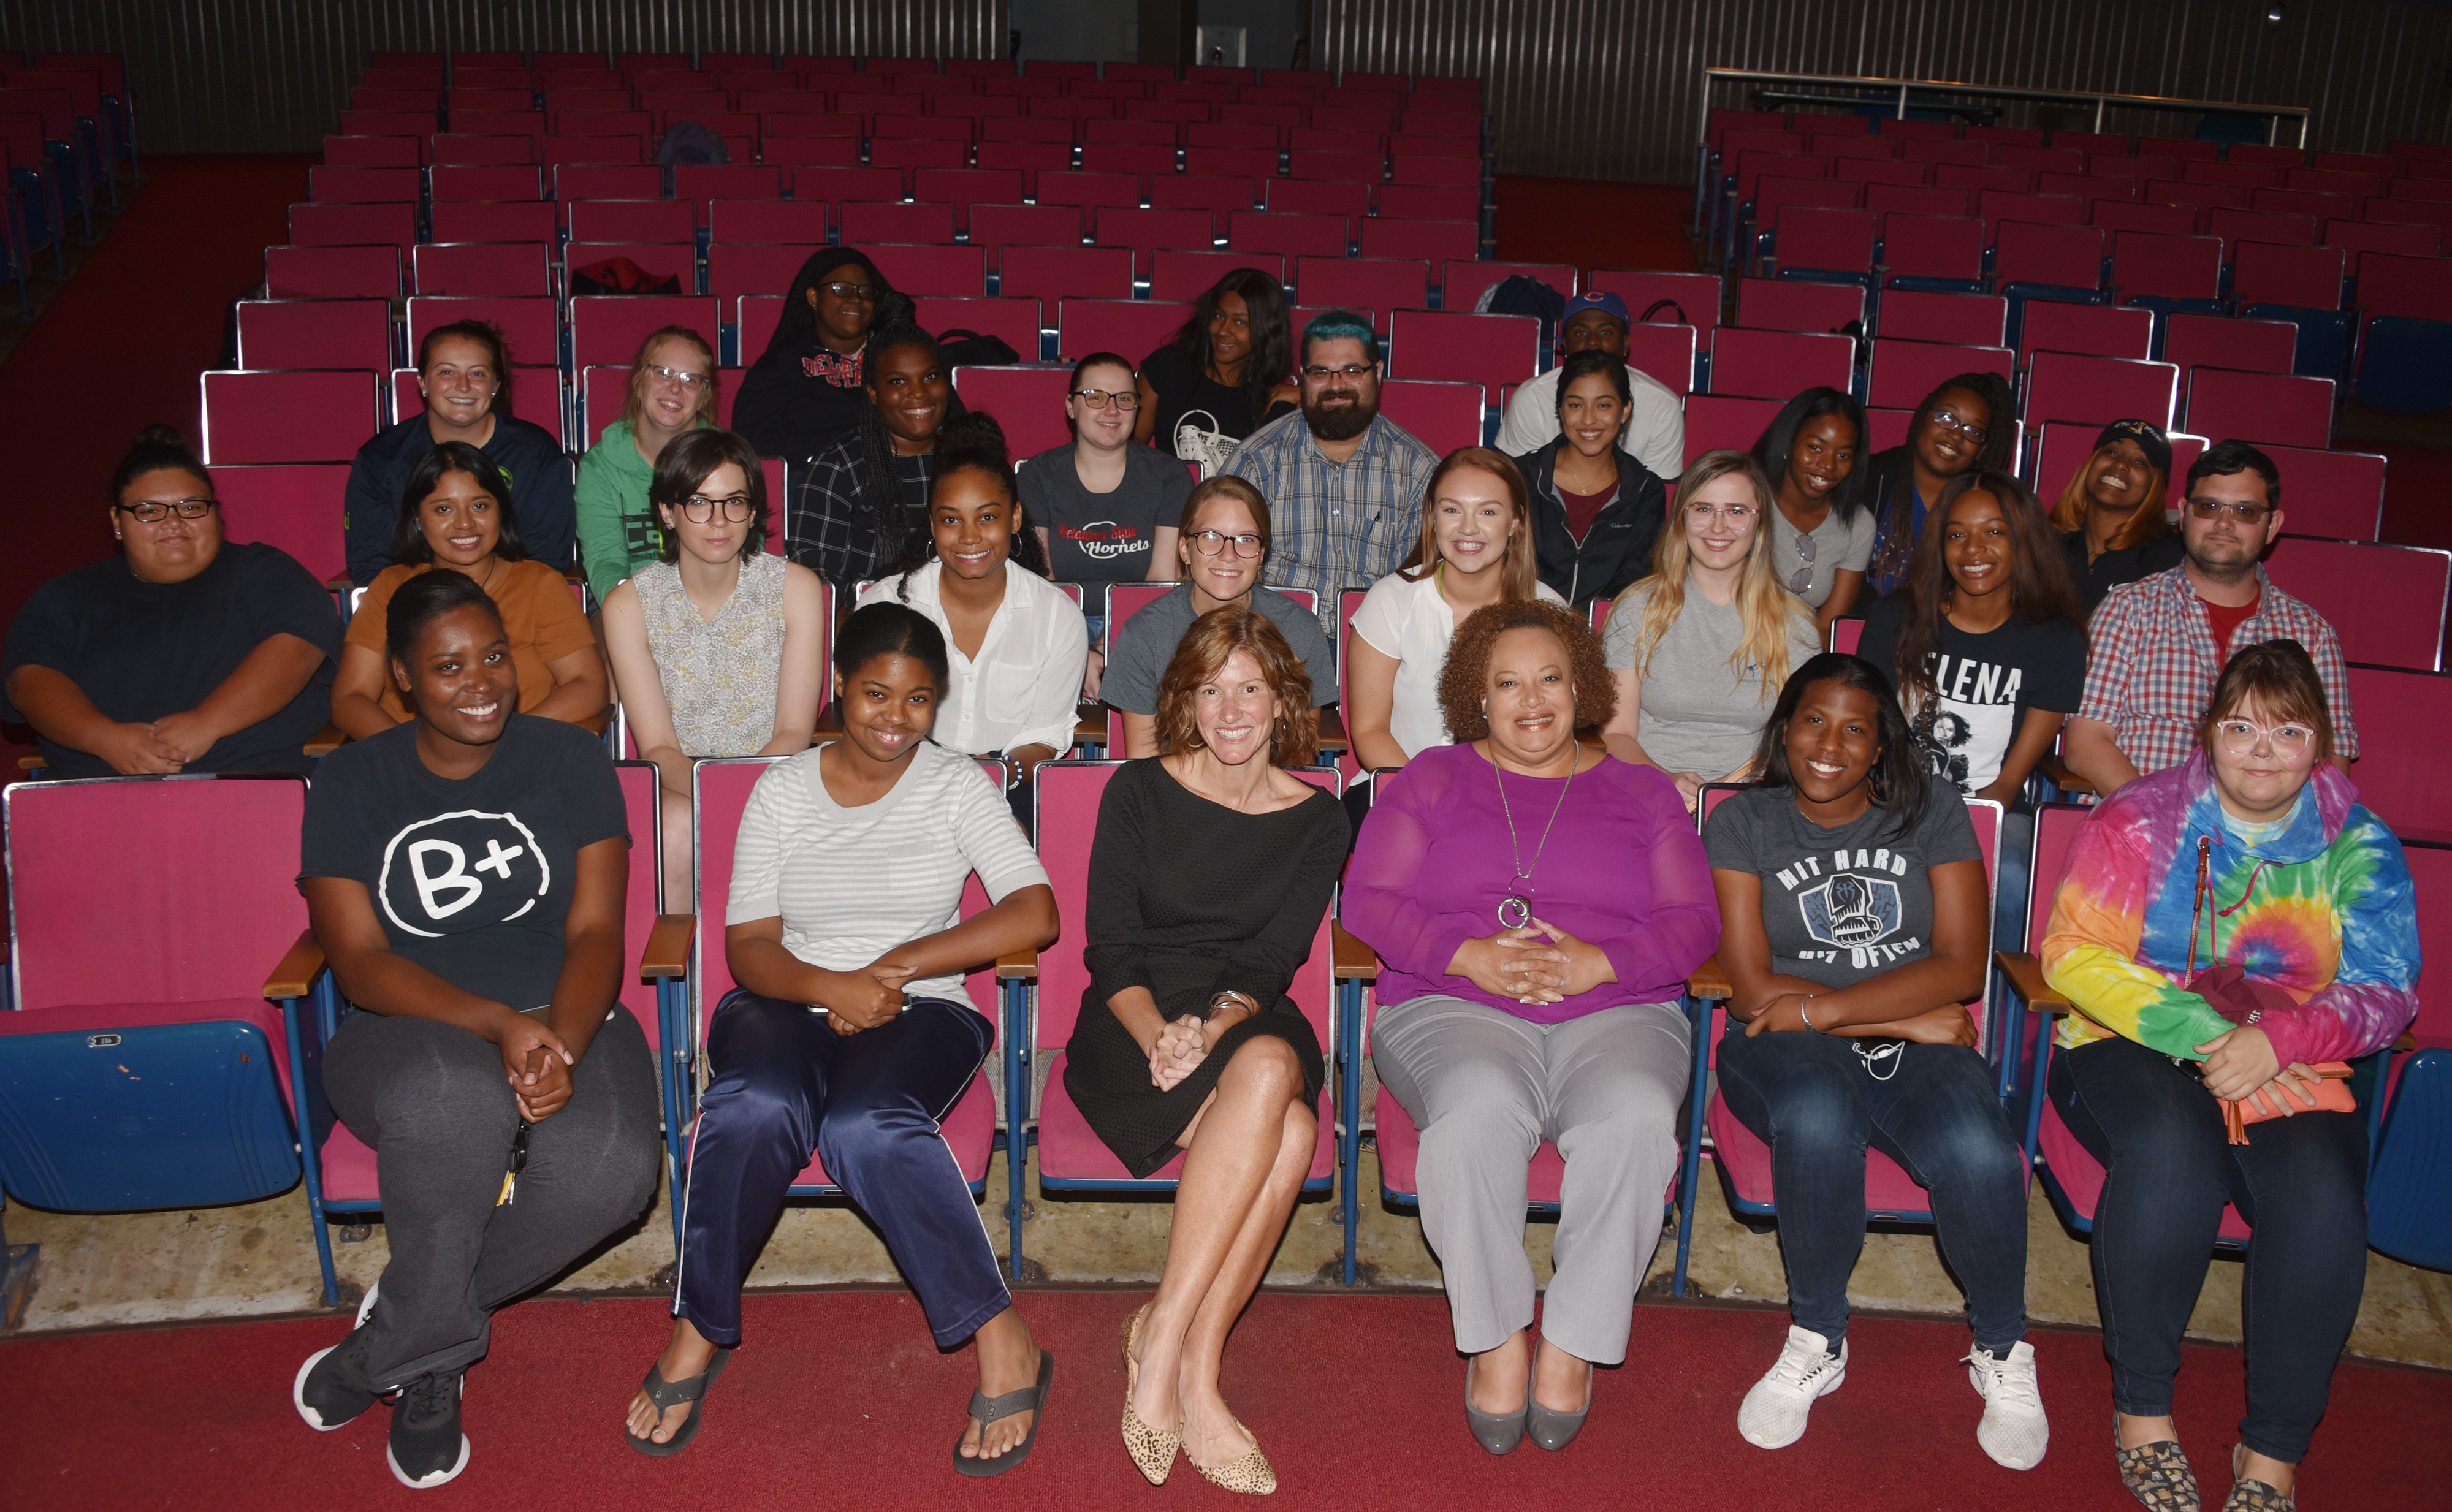 Dana Bowe (center front, black dress), 2019 Delaware Teacher of the Year, seated next to Dr. Crystal Timmons, director of Clinical and Field Experiences, poses with the education majors she shared her teaching experiences with on Sept. 25 in the Education and Humanities Theatre.